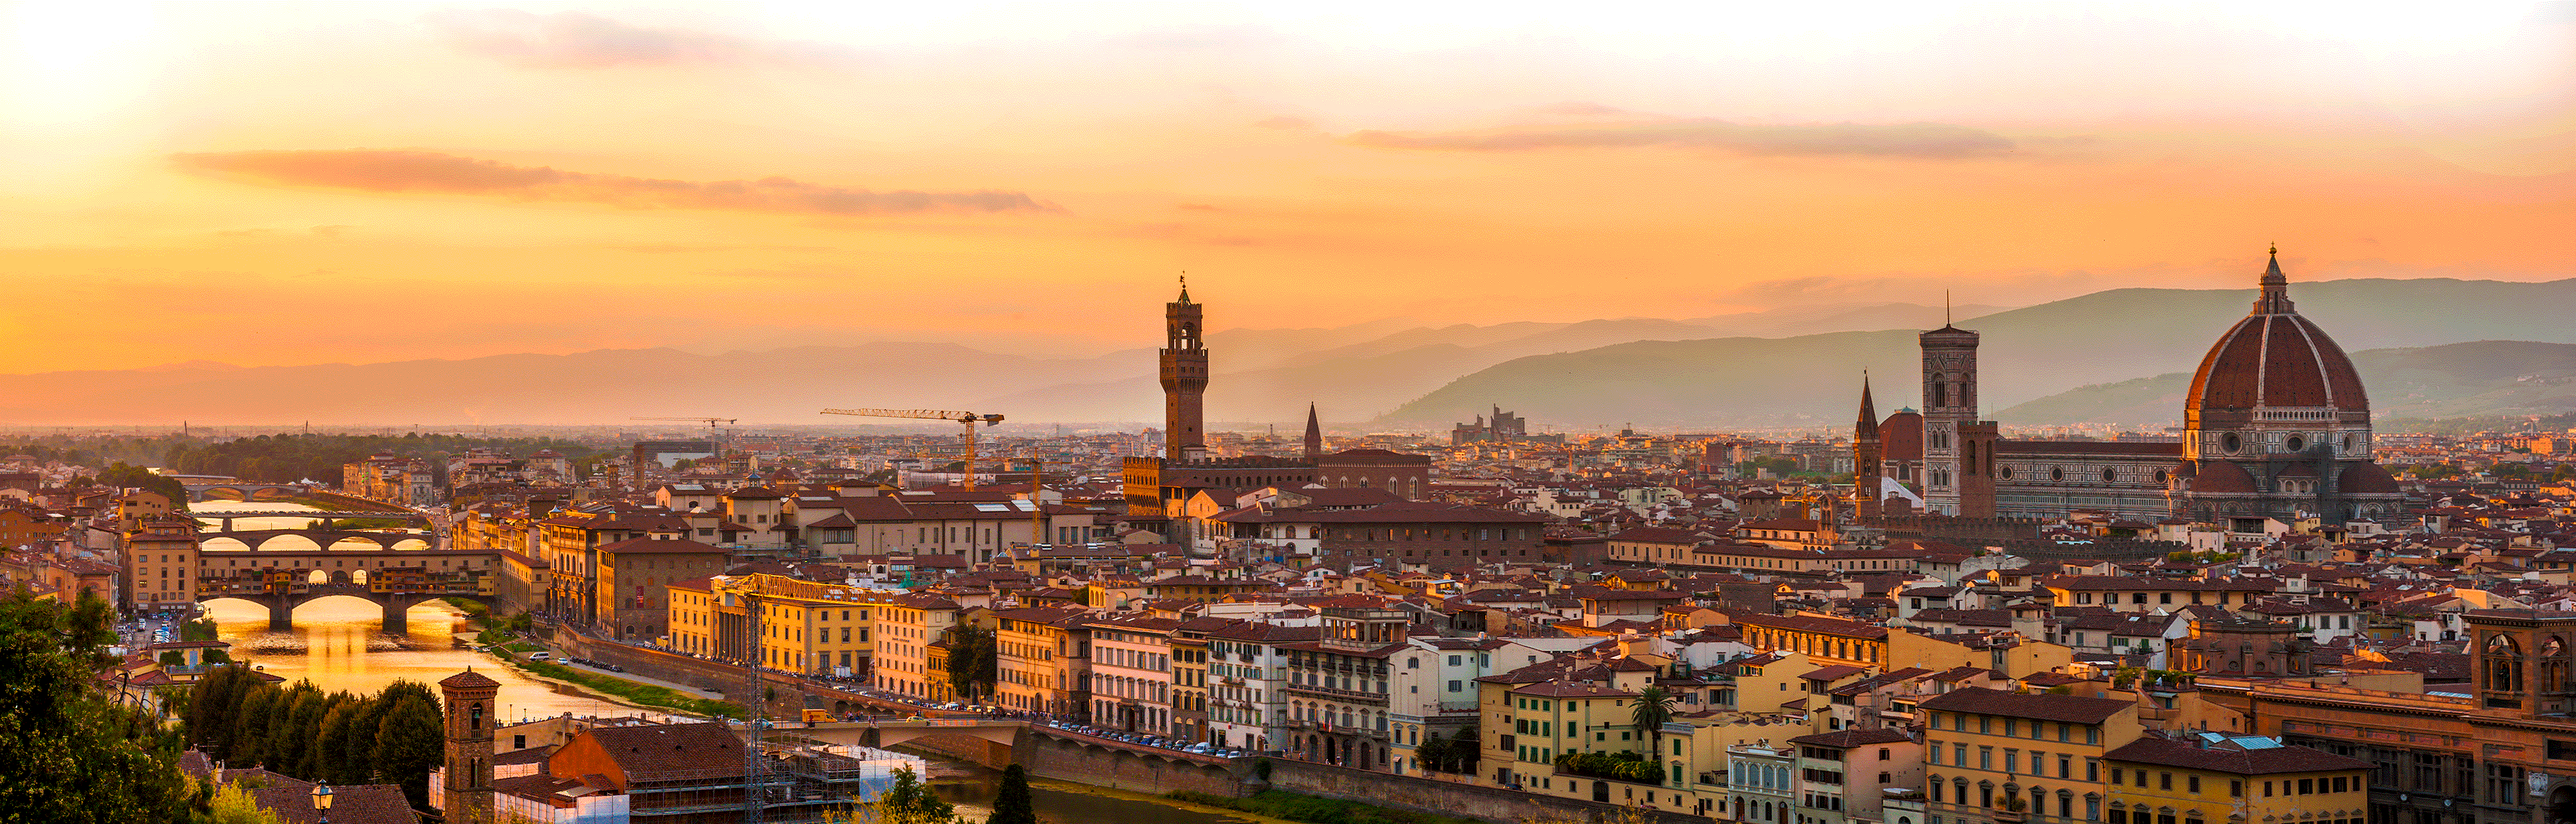 Florence Italy skyline at sunset